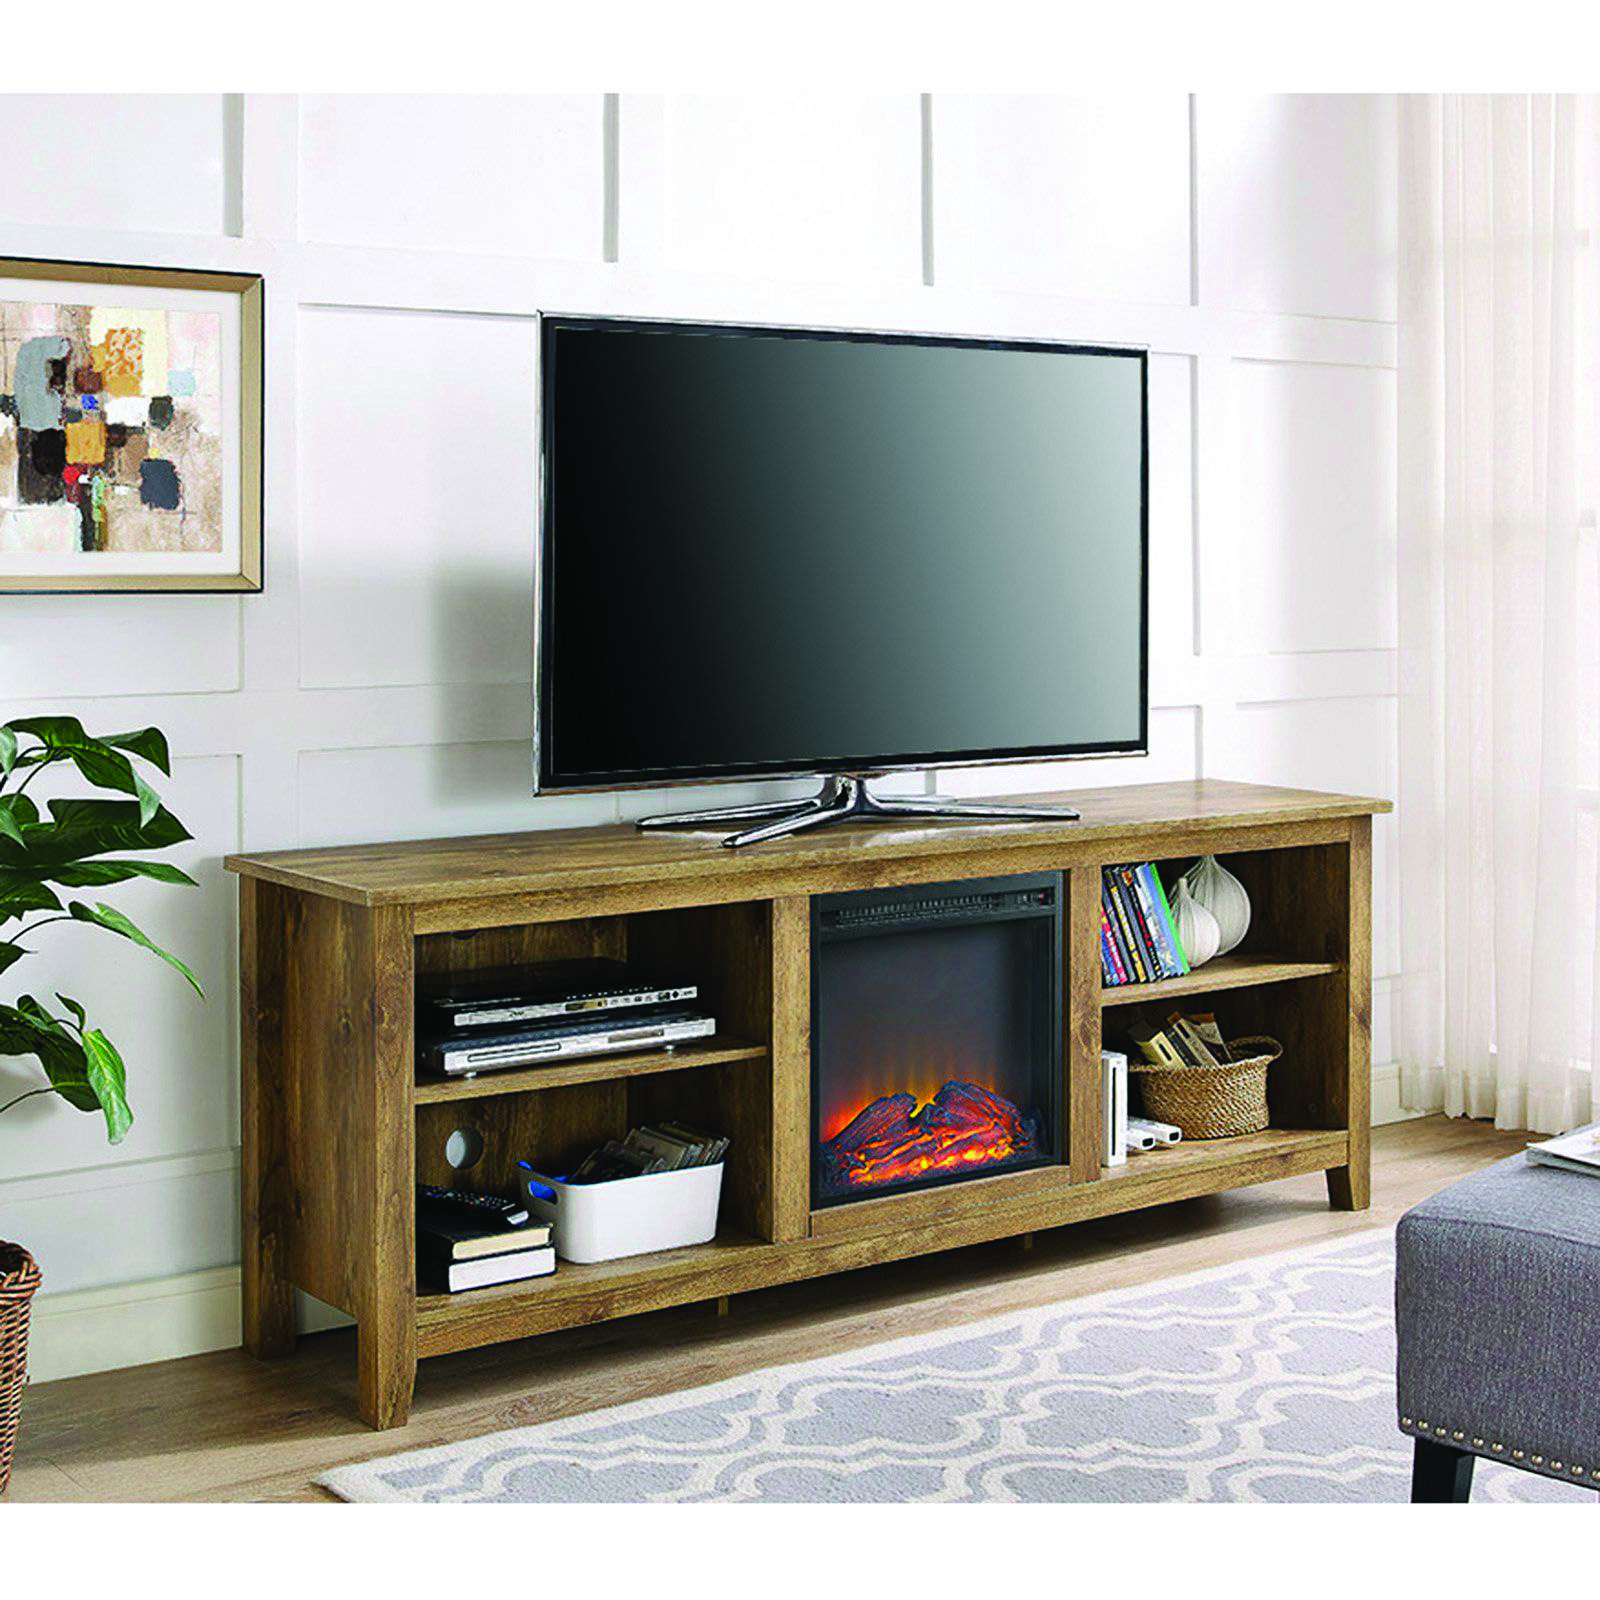 Different Fireplace Tv Stand At Bjs Only On This Page Fireplace